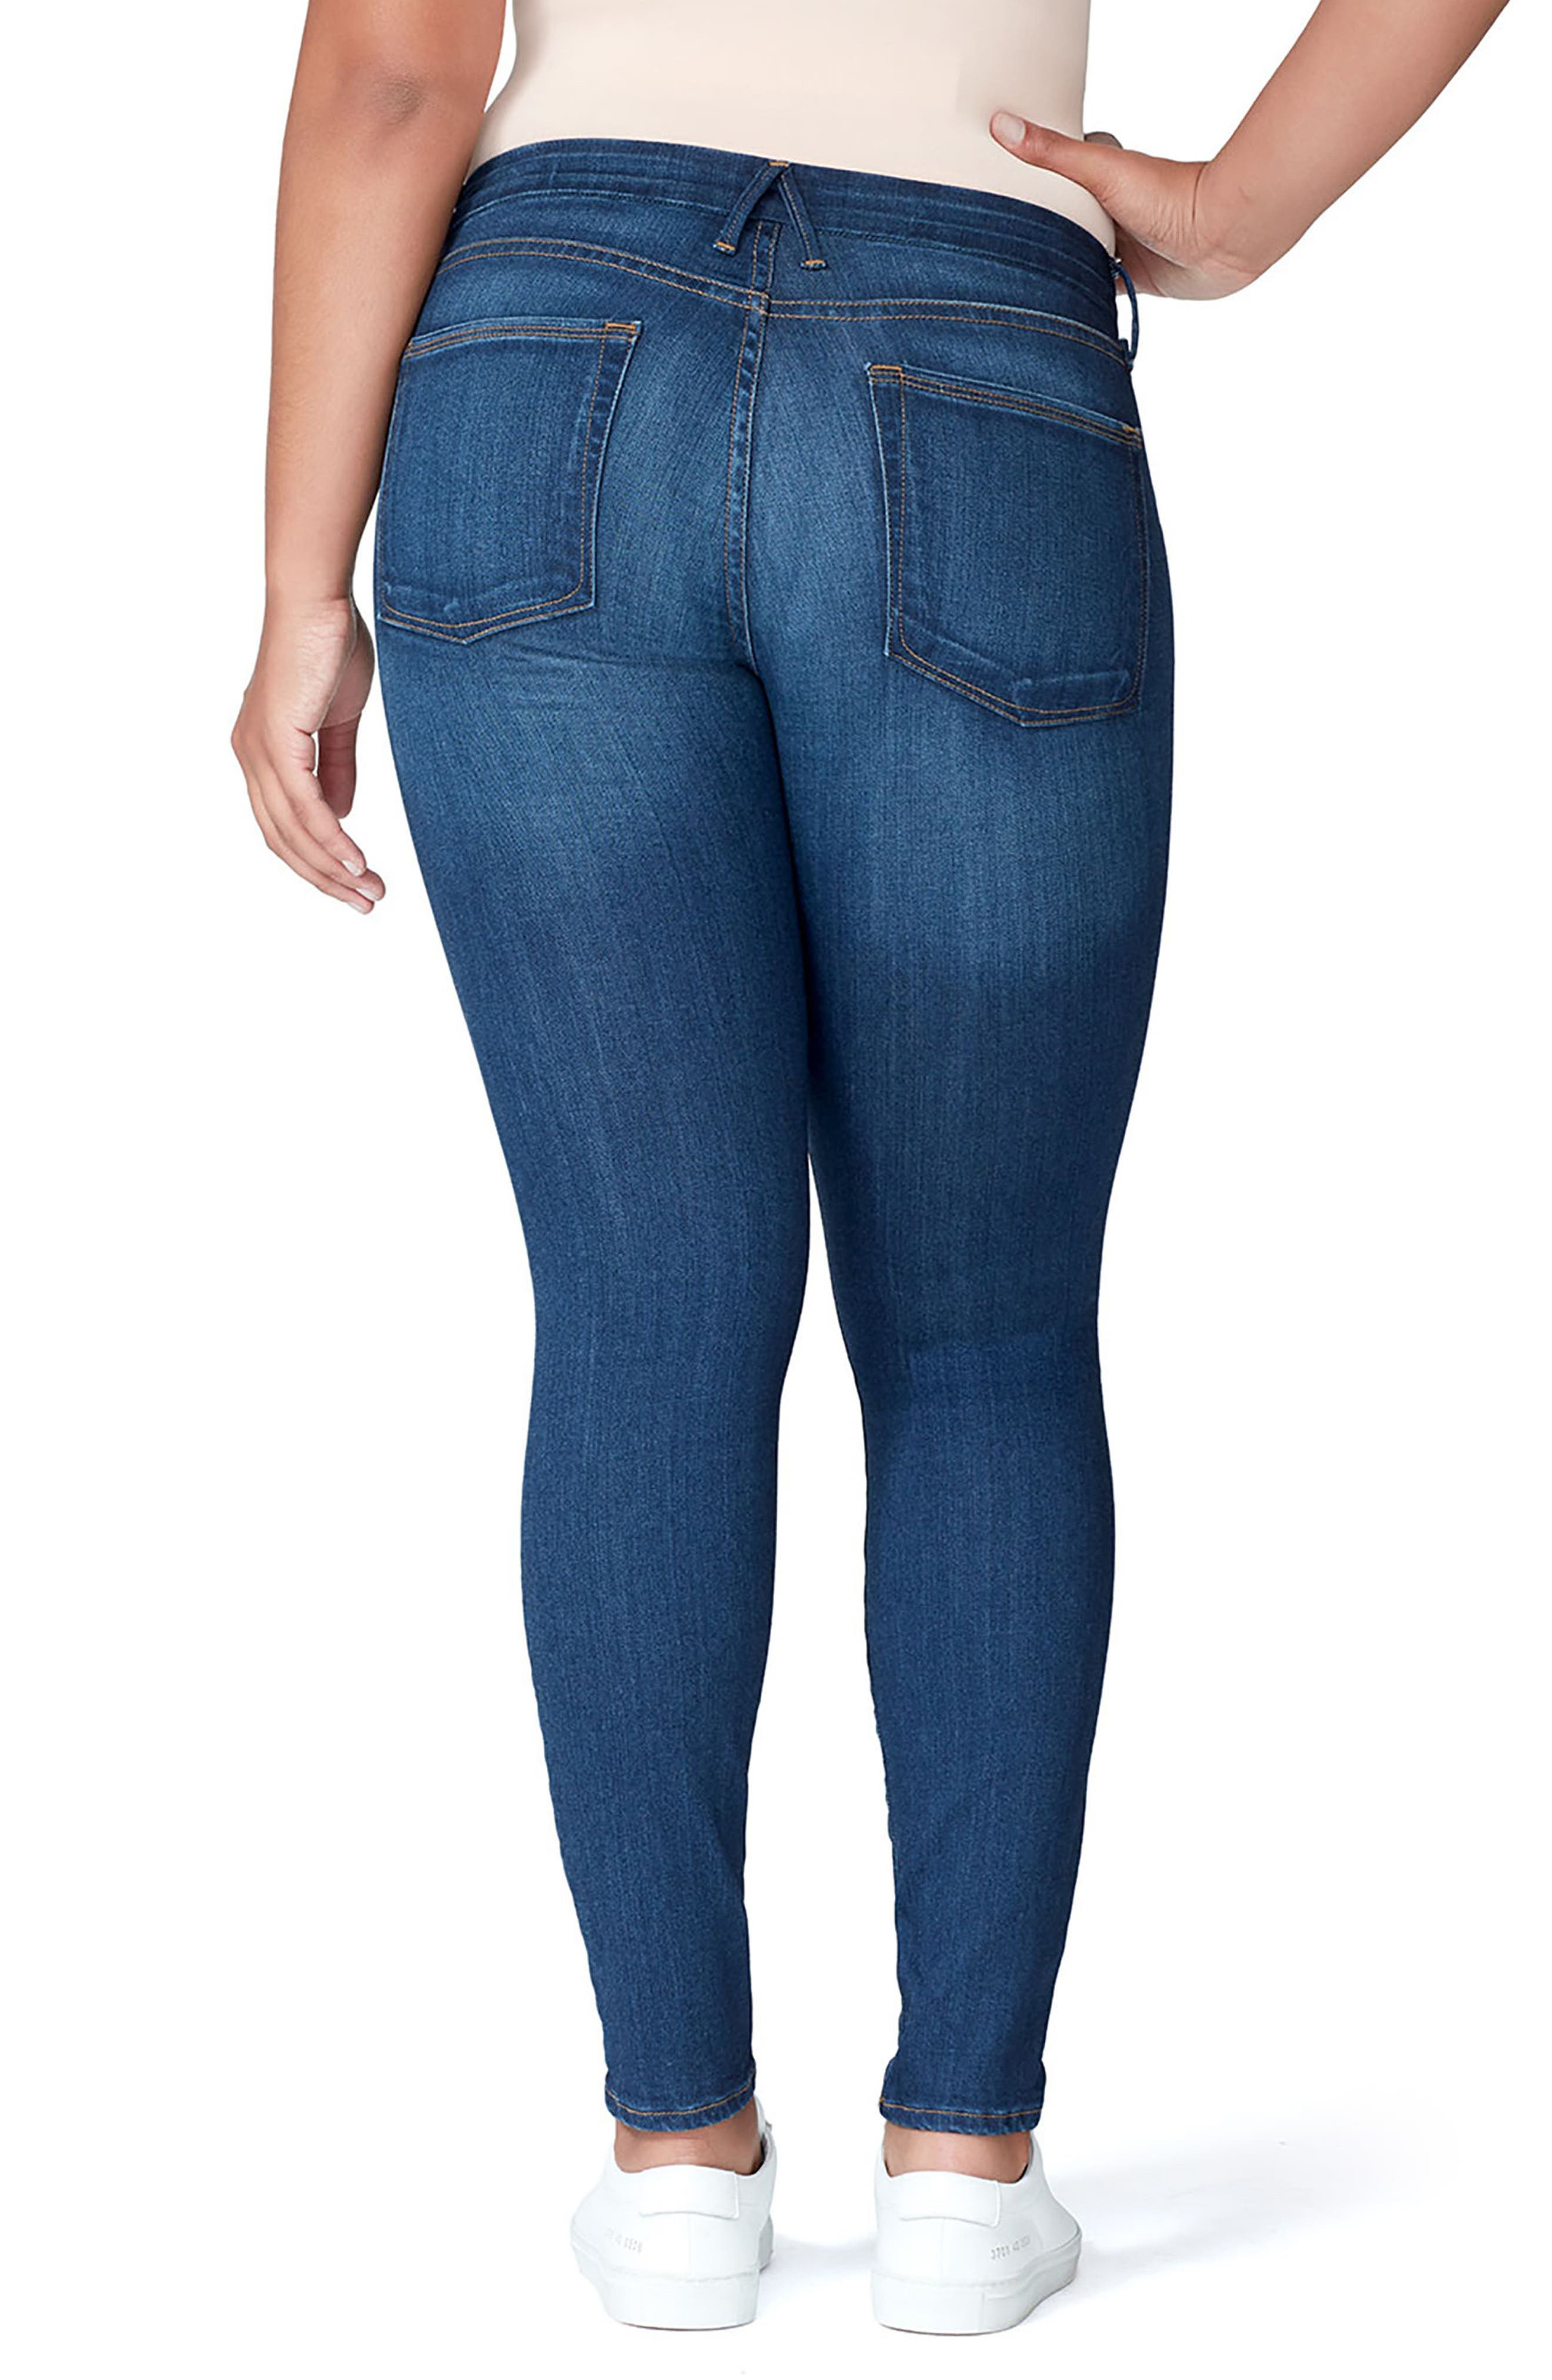 Good Mama The Honeymoon Low Rise Maternity Skinny Jeans,                             Alternate thumbnail 2, color,                             BLUE